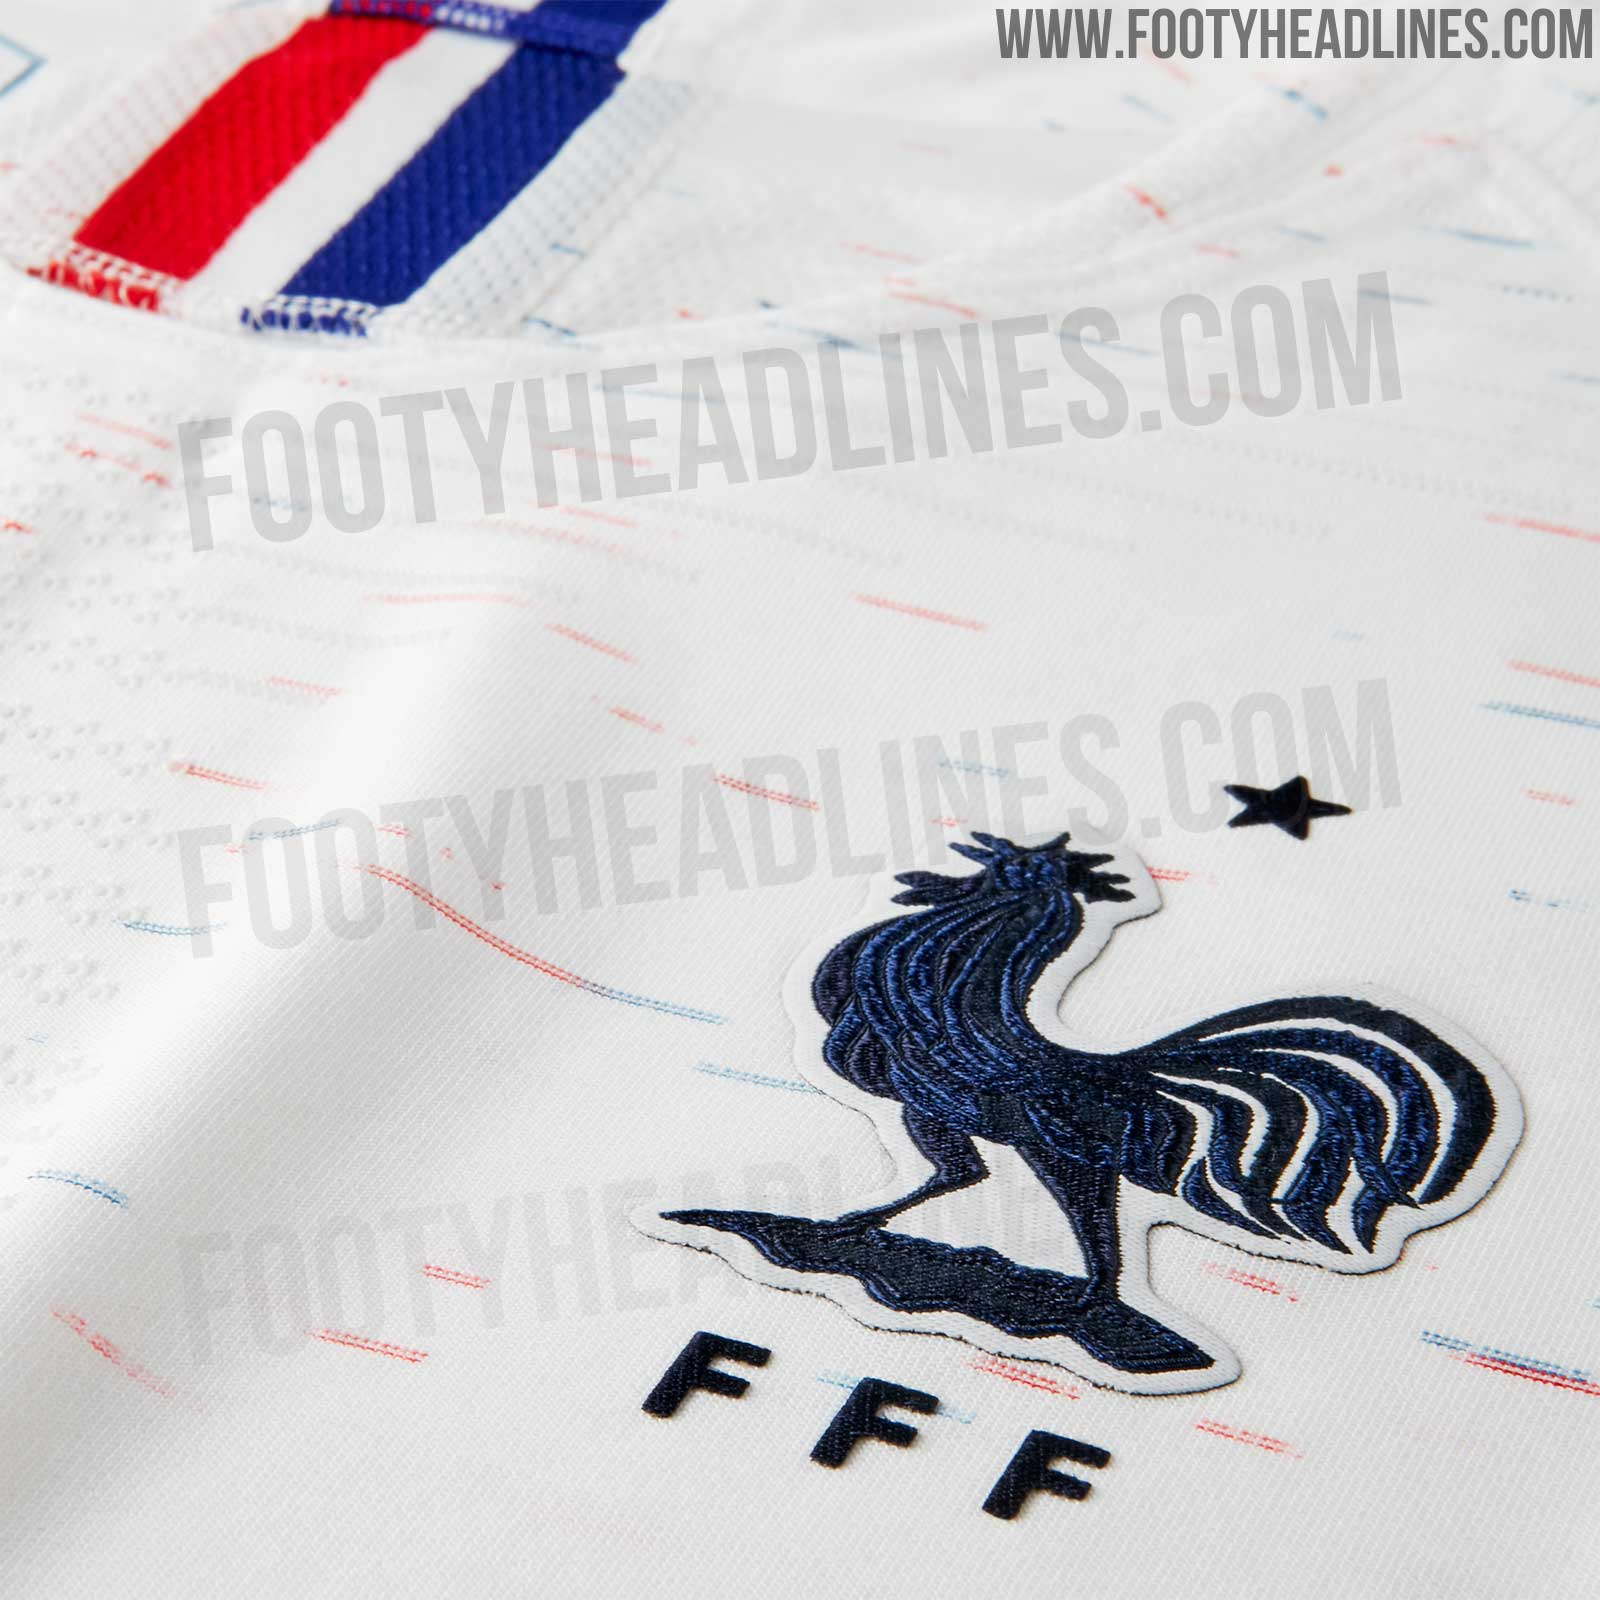 france-2018-world-cup-away-kit-4.jpg